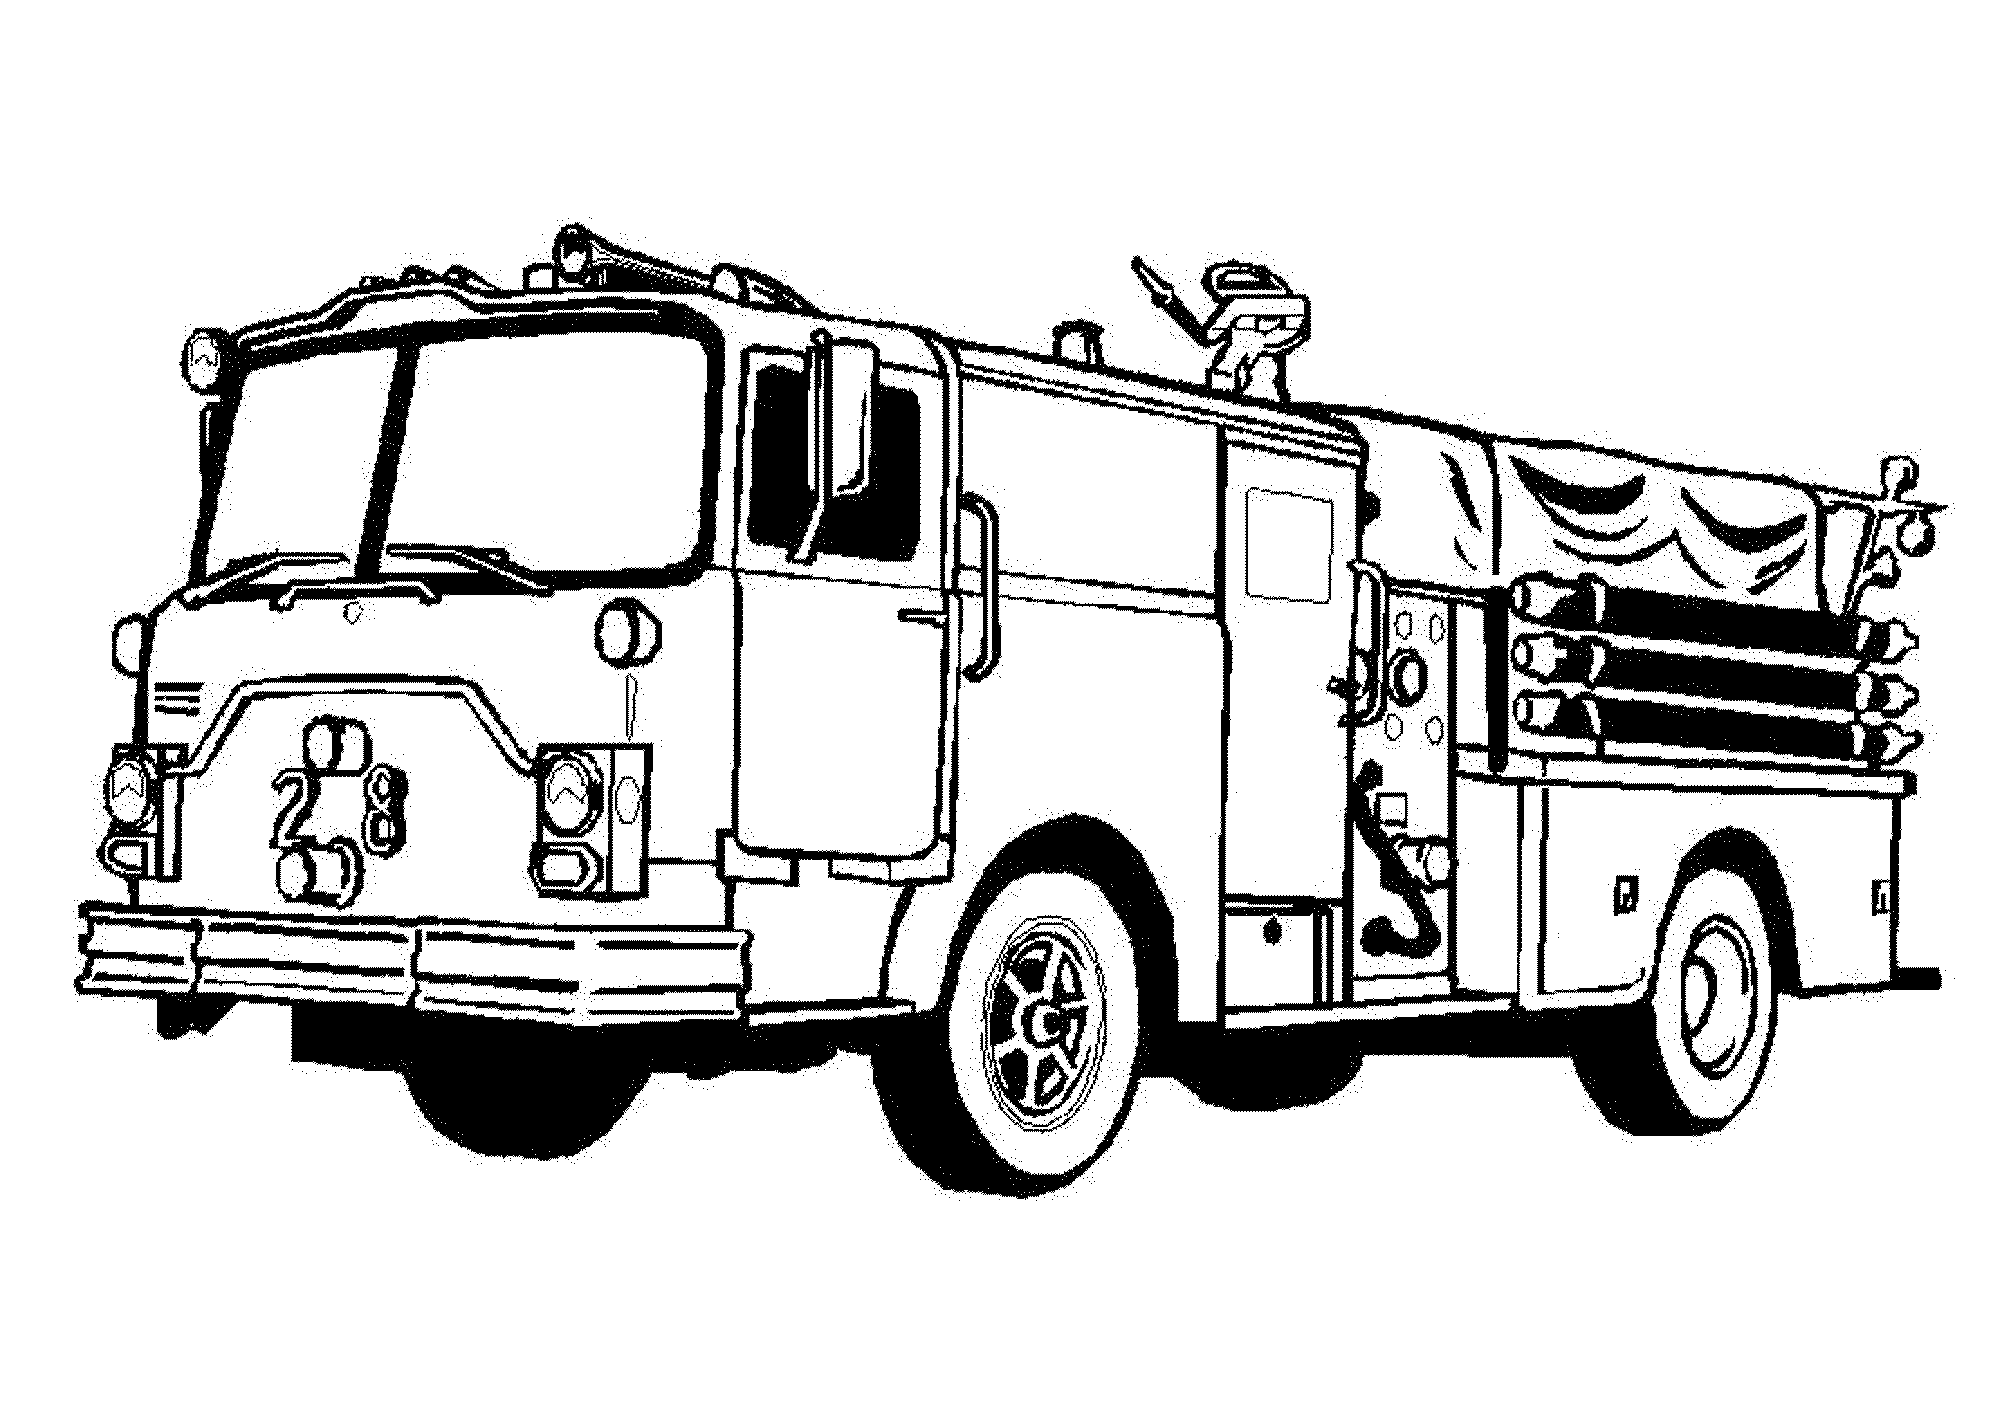 Coloring Pages Fire Truck Free Printable Fire Truck Coloring Pages Police And Fireman .